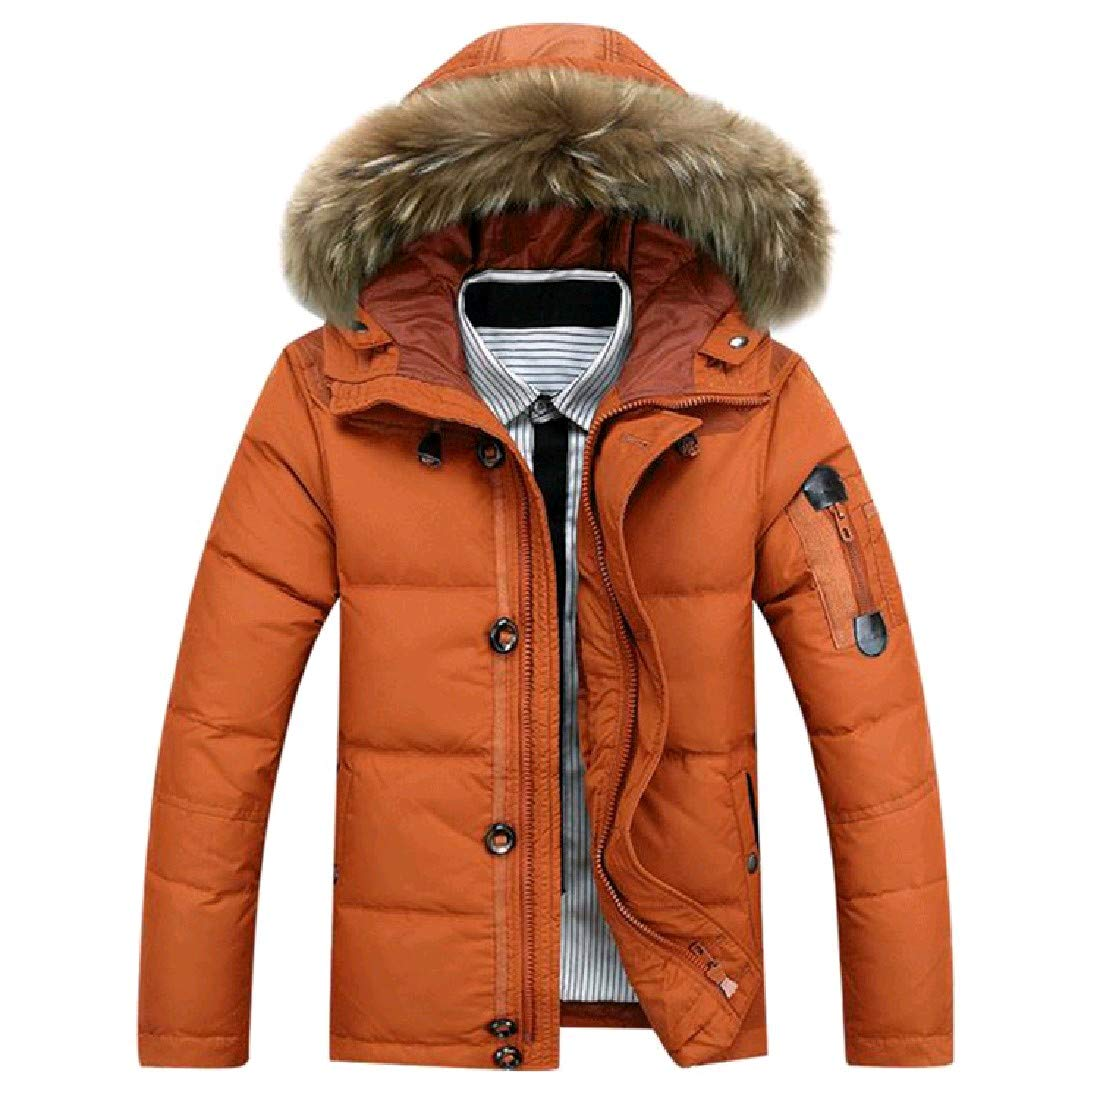 Nicelly Mens Juniors Warm Leisure Fur Collar Oversize Down Jacket